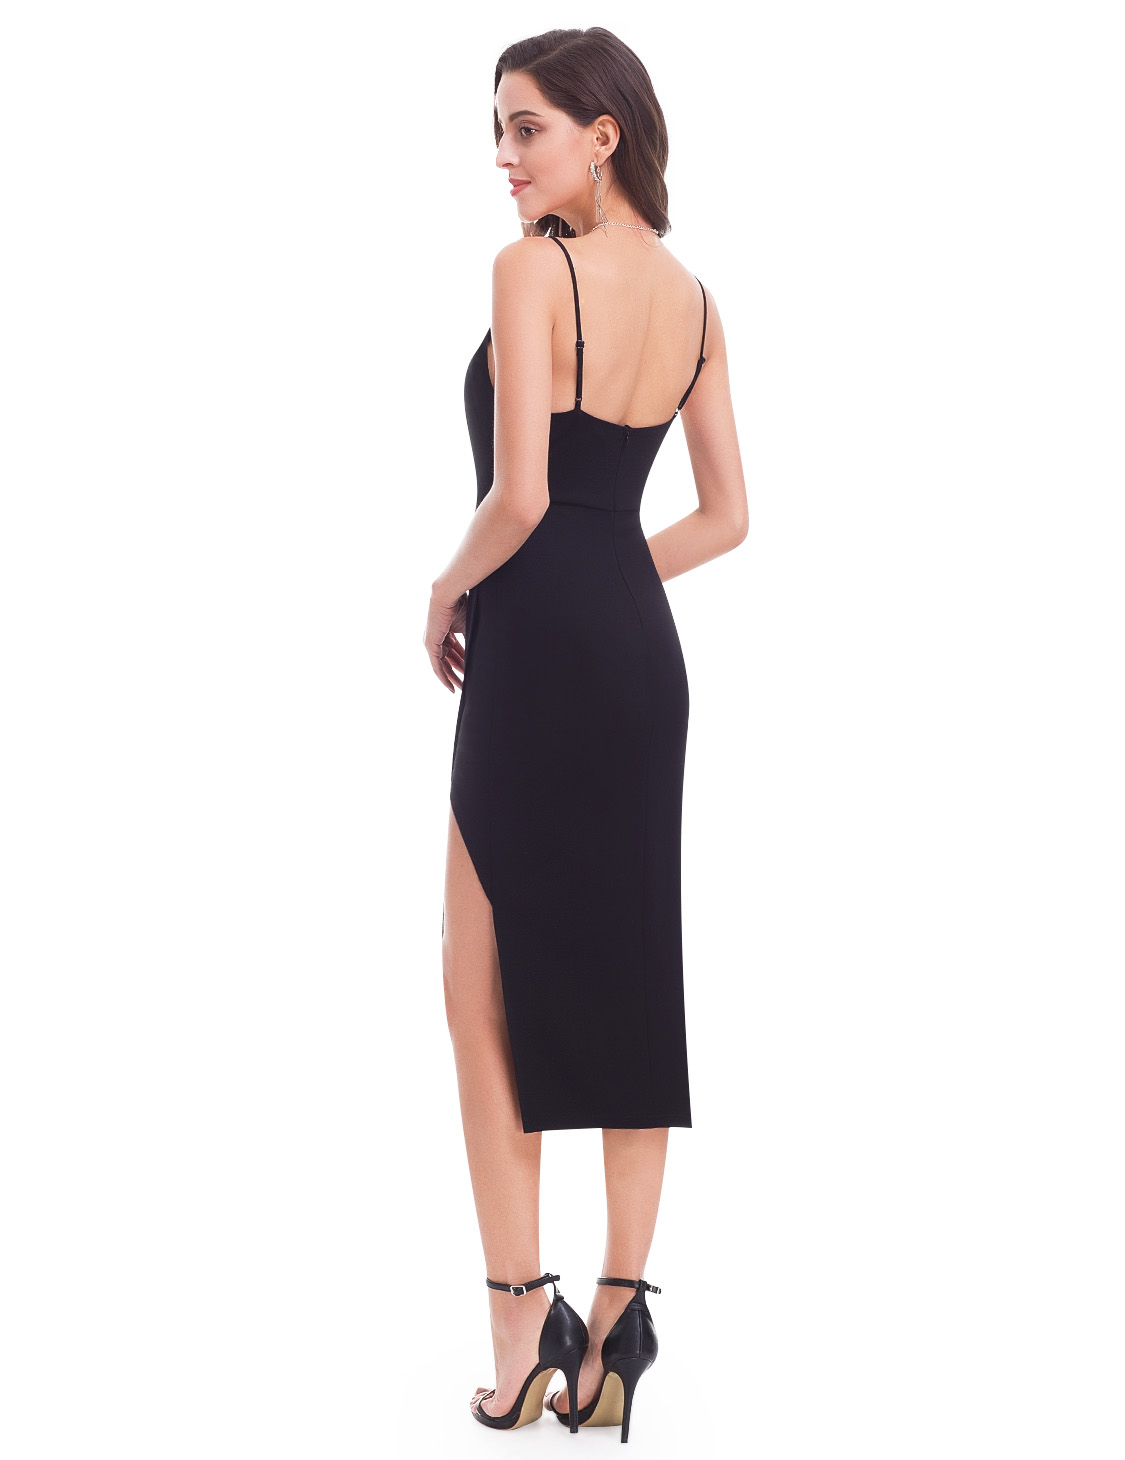 Ever-Pretty-Sexy-Cocktail-Dresses-Bodycon-Split-Formal-Prom-Party-Dresses-07123